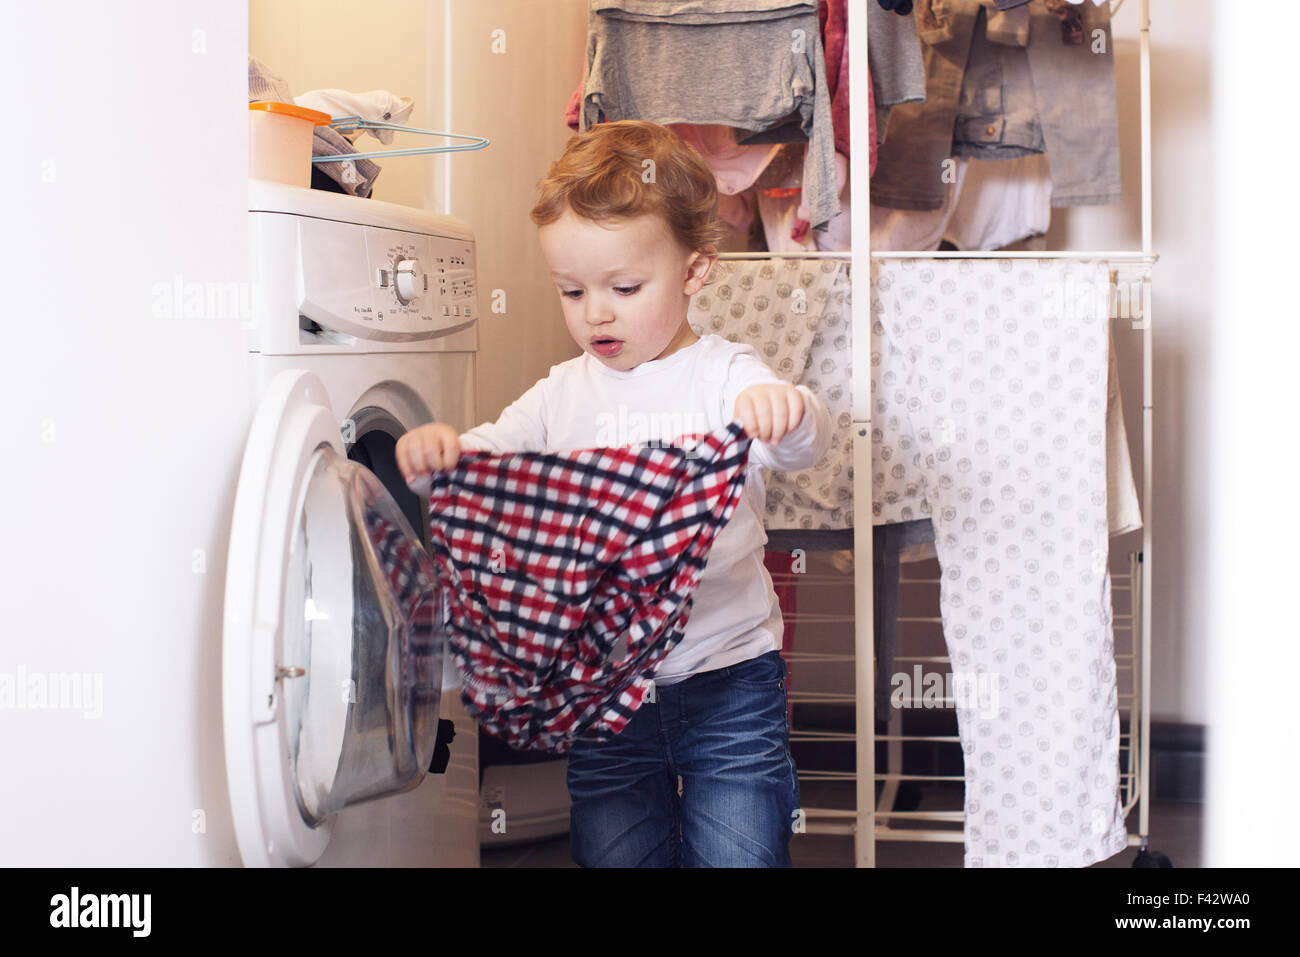 Little boy taking clothes out of dryer - Stock Image